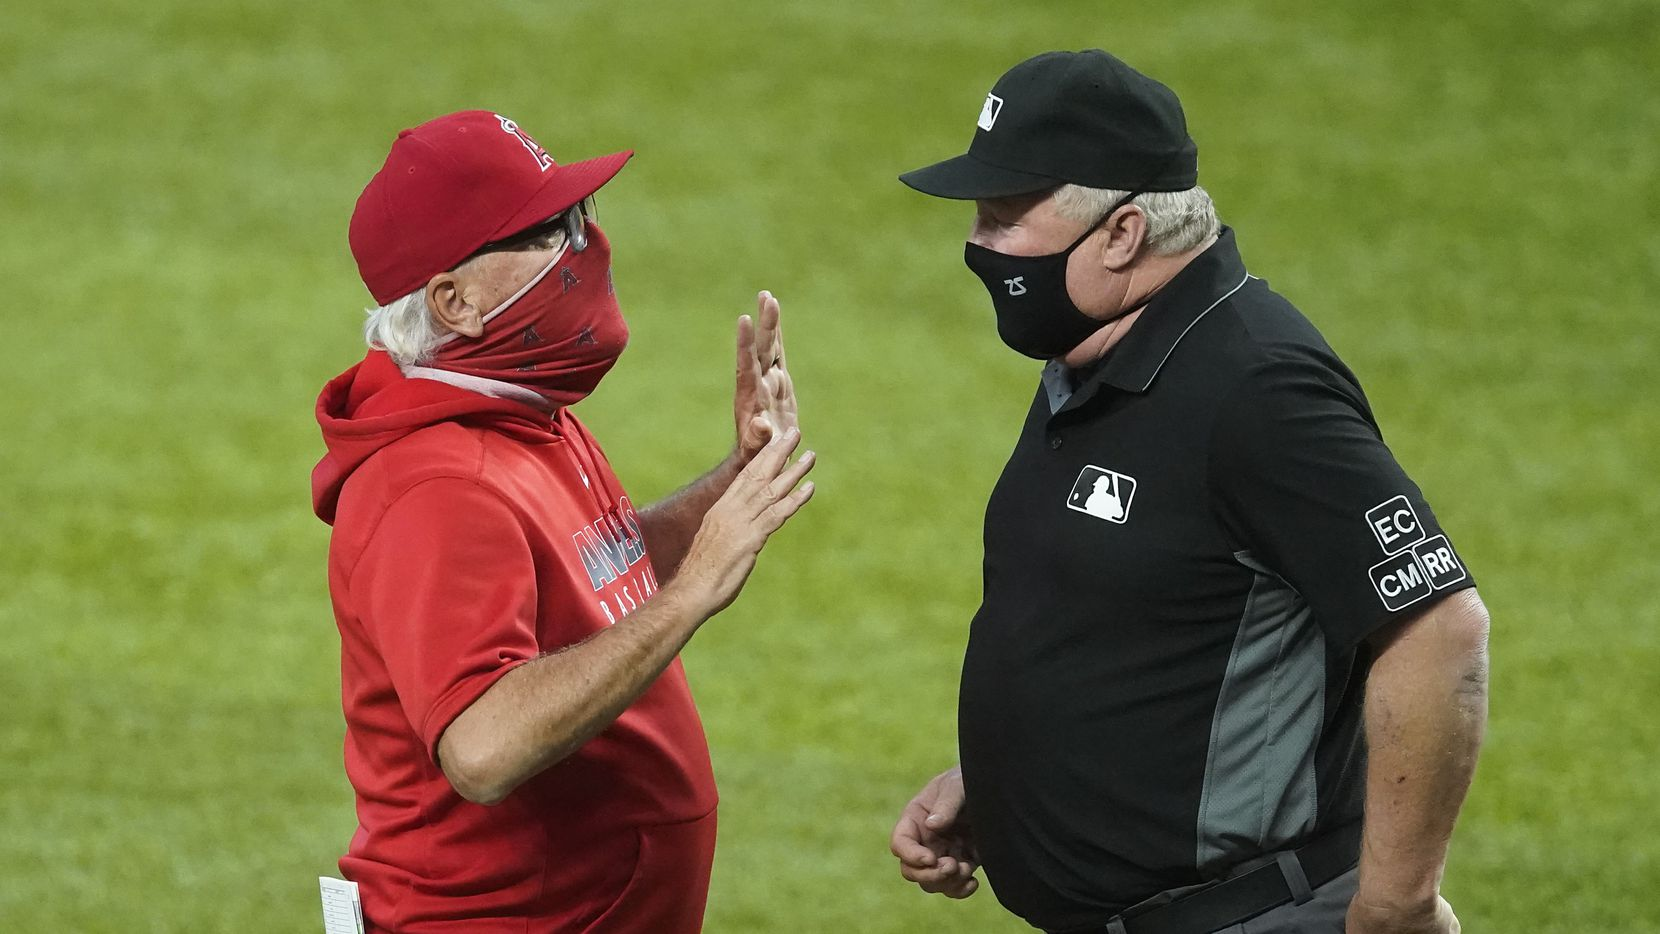 Los Angeles Angels manager Joe Maddon argues with umpire Doug Eddings after Angels center fielder Jo Adell initially looked like he was hit by a pitch, but was ruled a check swing, during the second inning against the Texas Rangers at Globe Life Field on Sunday, Aug. 9, 2020. Adell stuck out in the at bat.